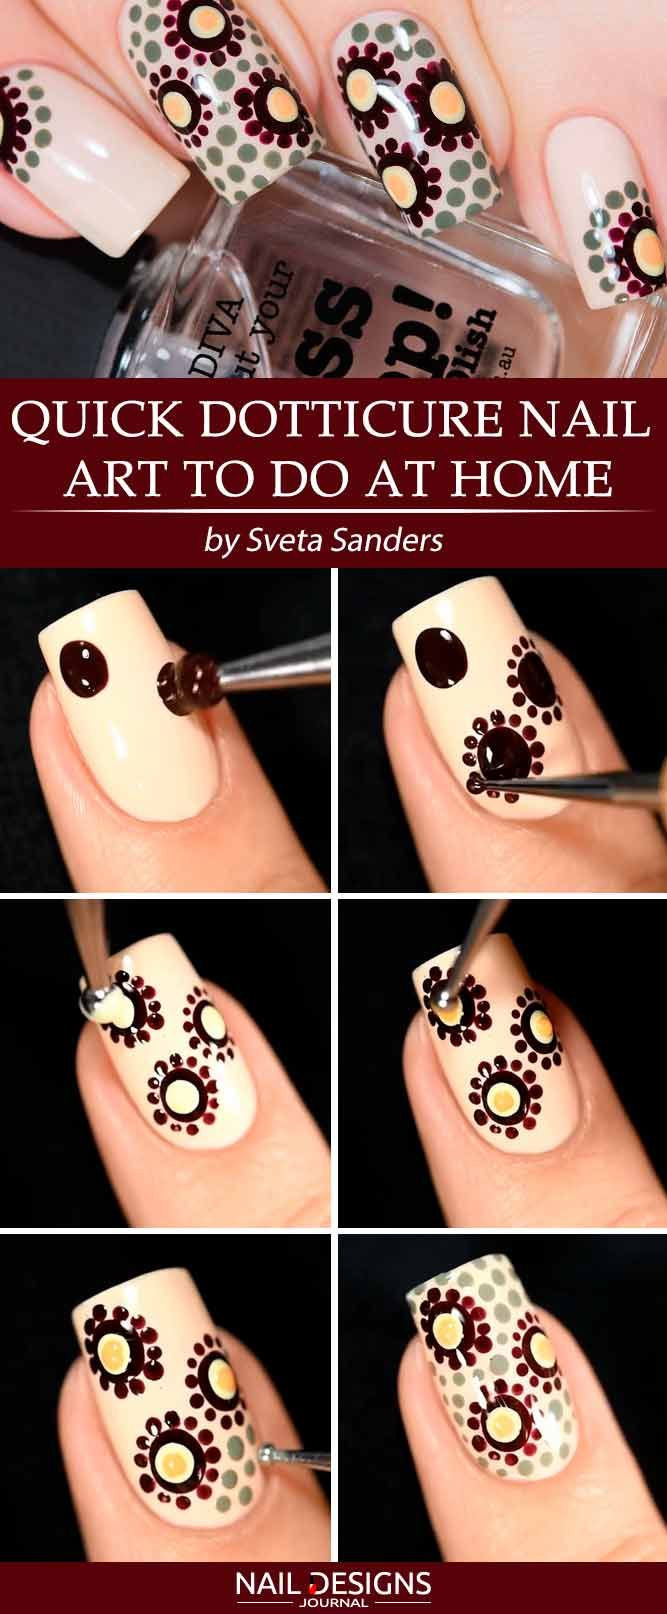 6515 best Nail Art images on Pinterest | Nail scissors, Nail art ...